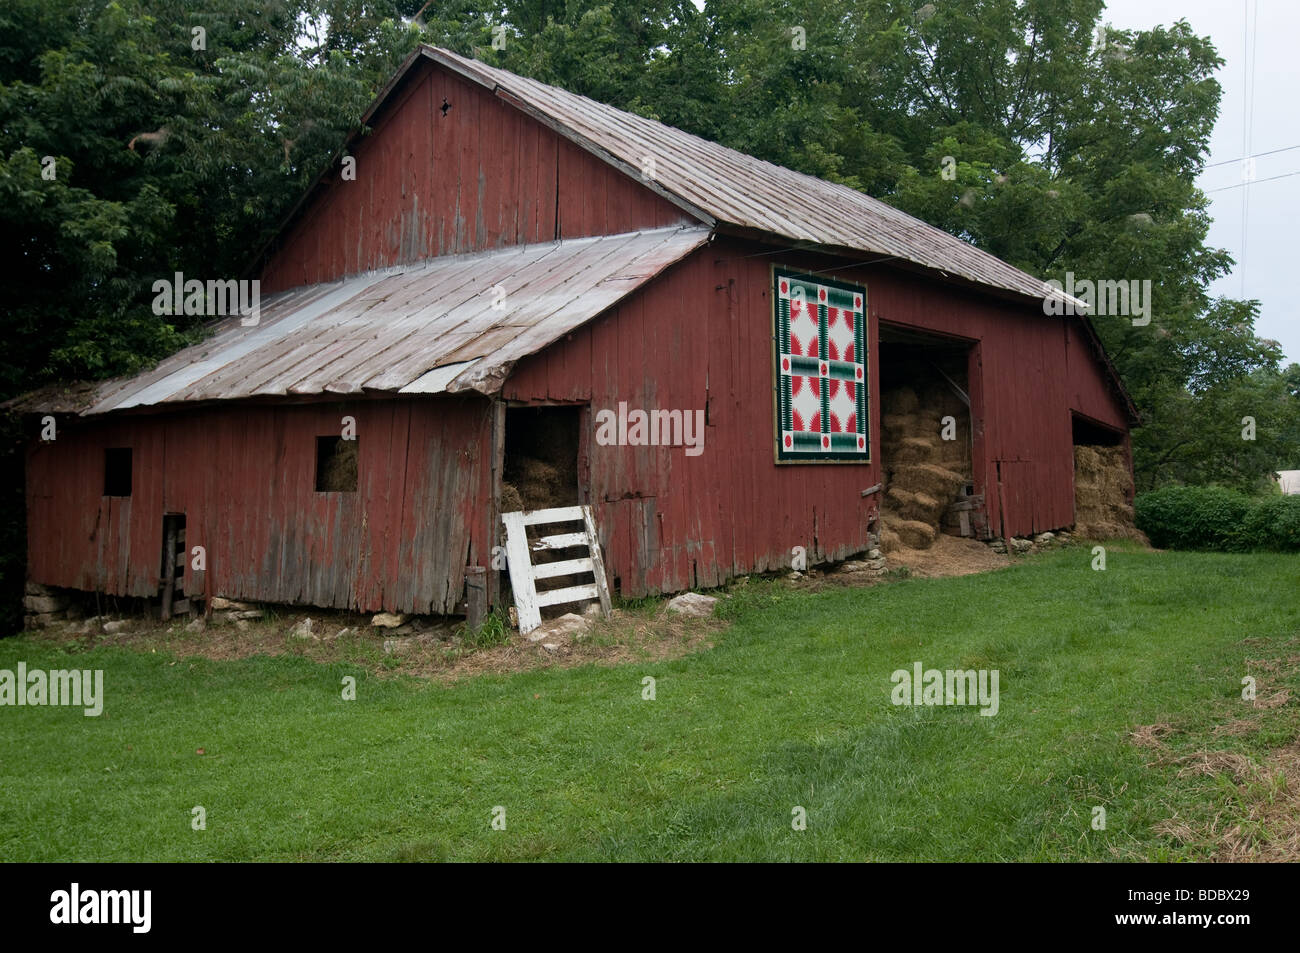 Quilt hanging on old red barn, Batchtown, Illinois - Stock Image